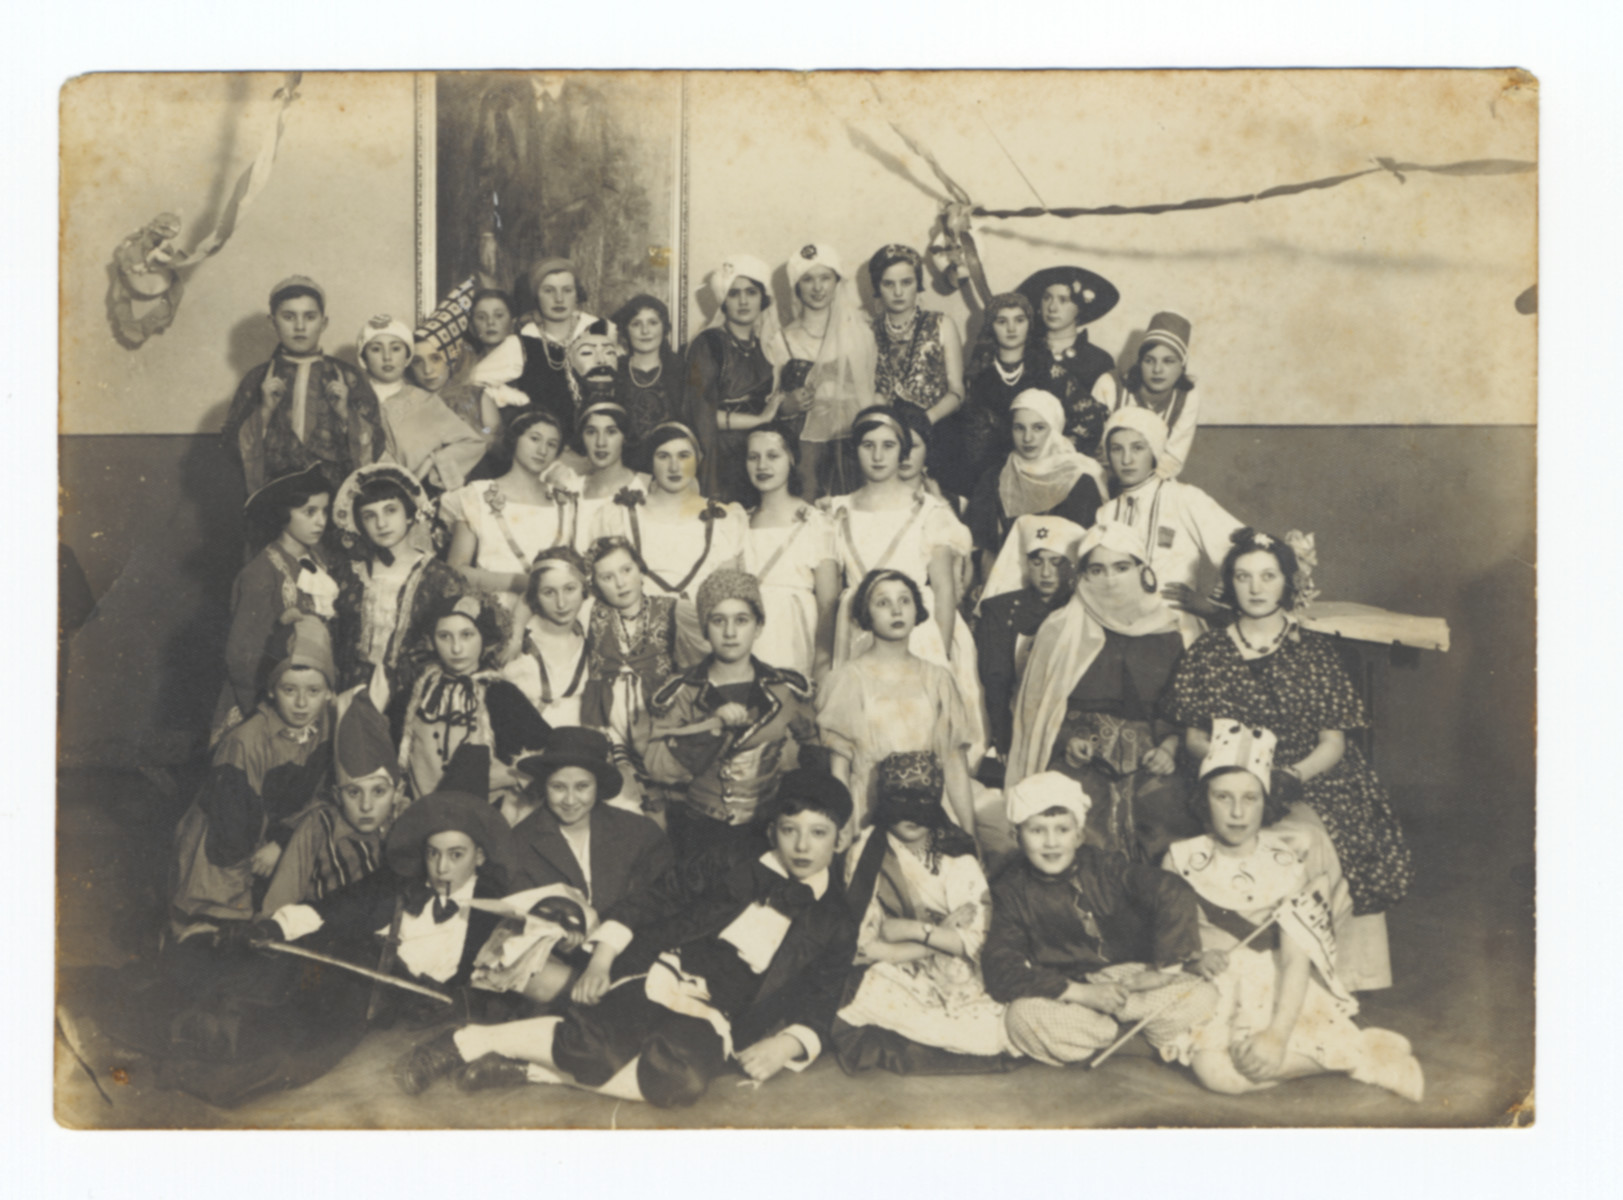 Group portrait of Jewish children wearing costumes at a Purim Ball in Kaunas.  Pictured in the front is Alexander Zeidel dressed as a Hassid.